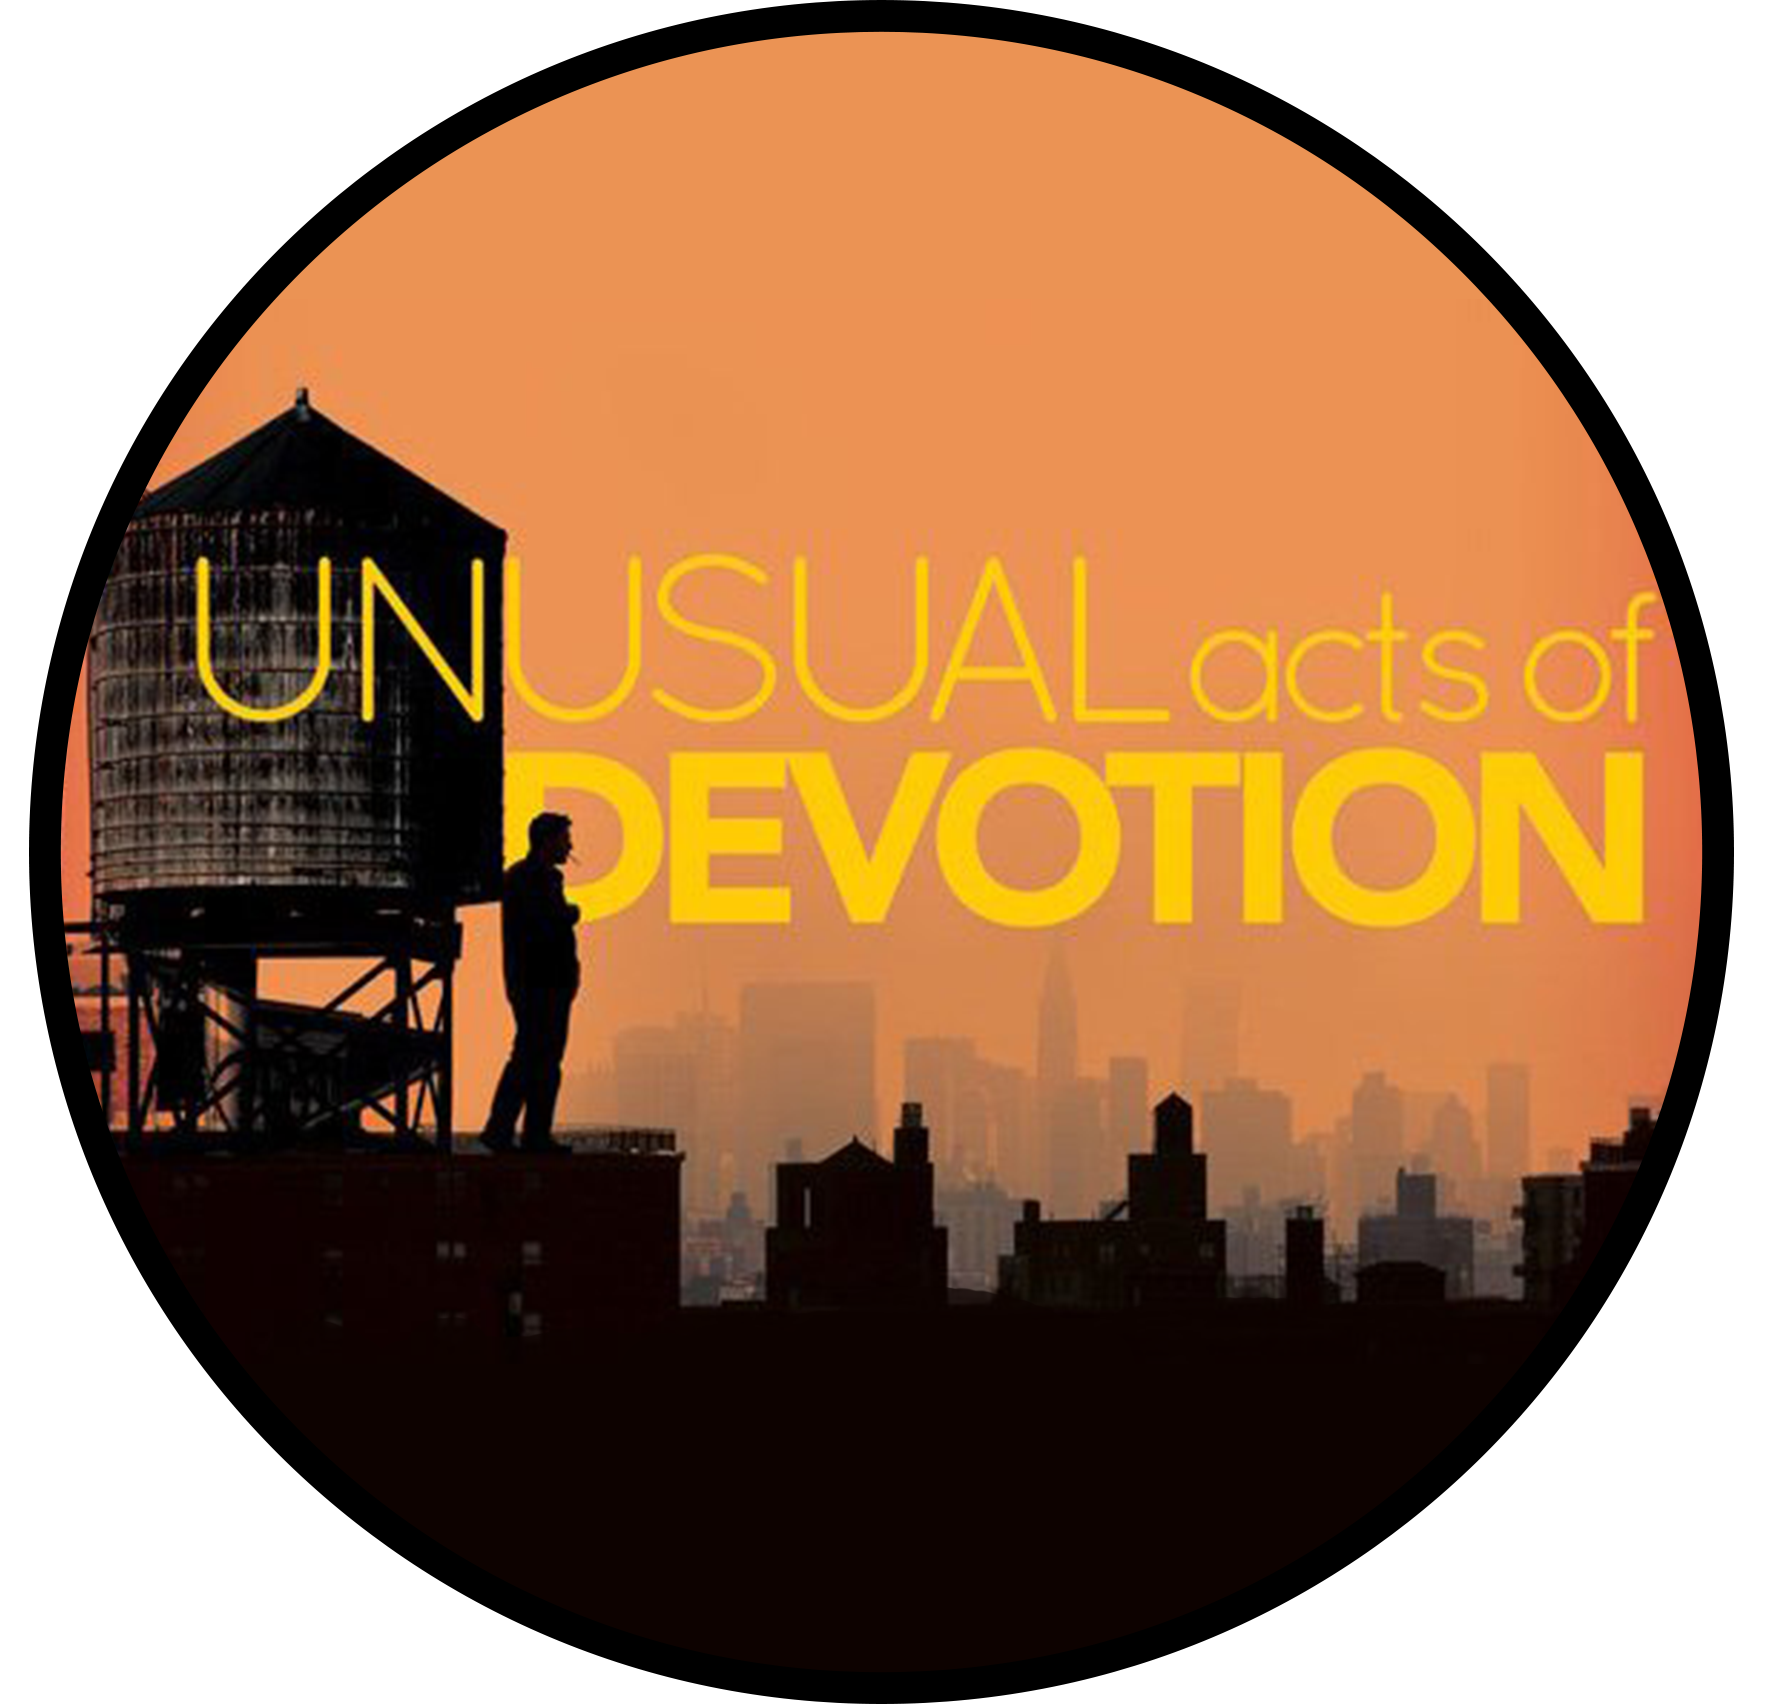 UNUSUAL ACTS OF DEVOTION